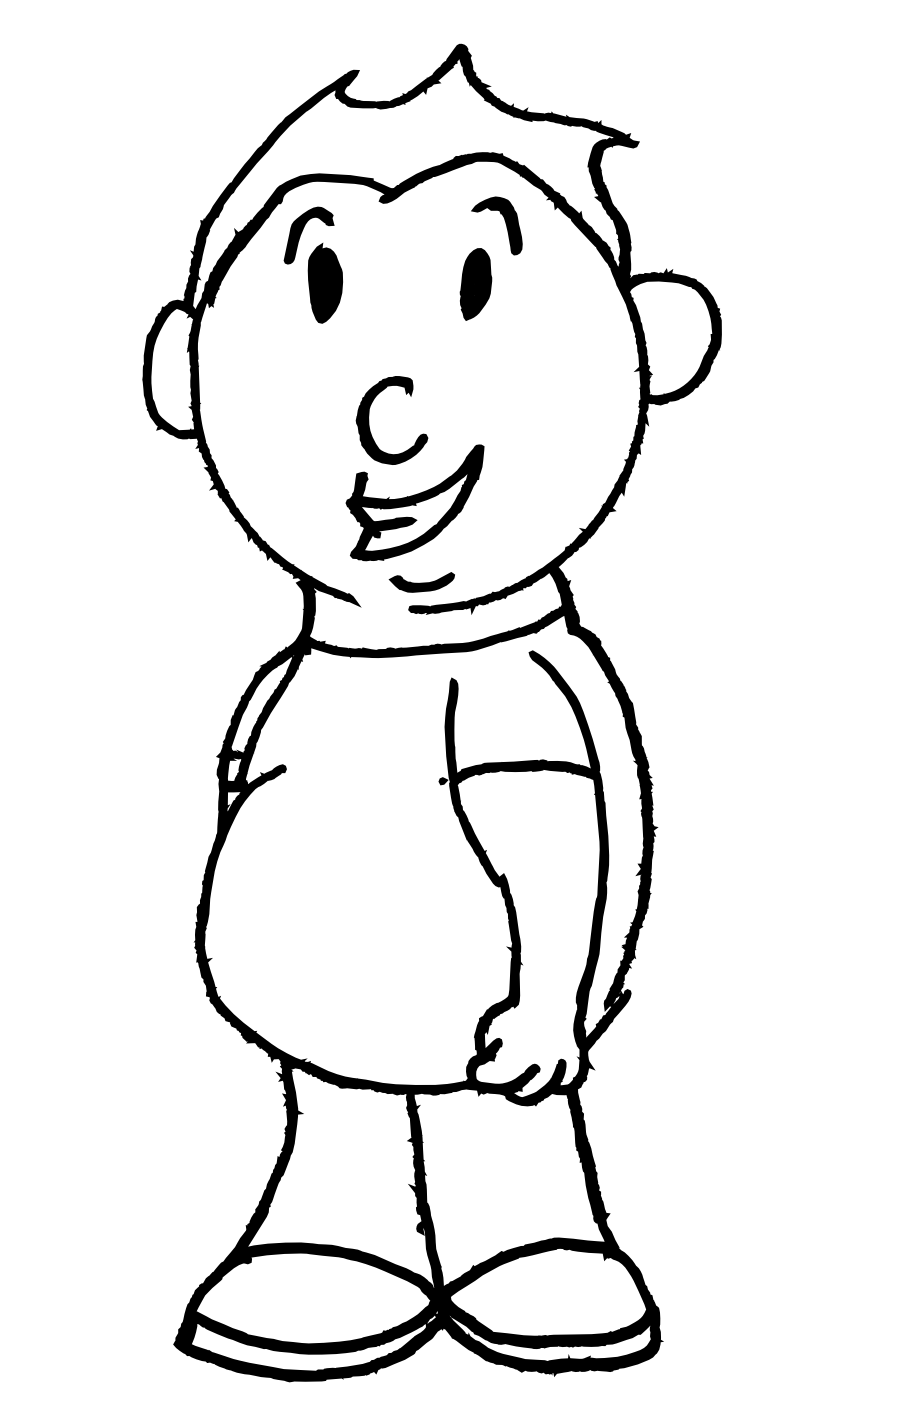 cartoon characters easy to draw drawing images of cartoons how to draw easy cartoons to draw easy cartoon characters